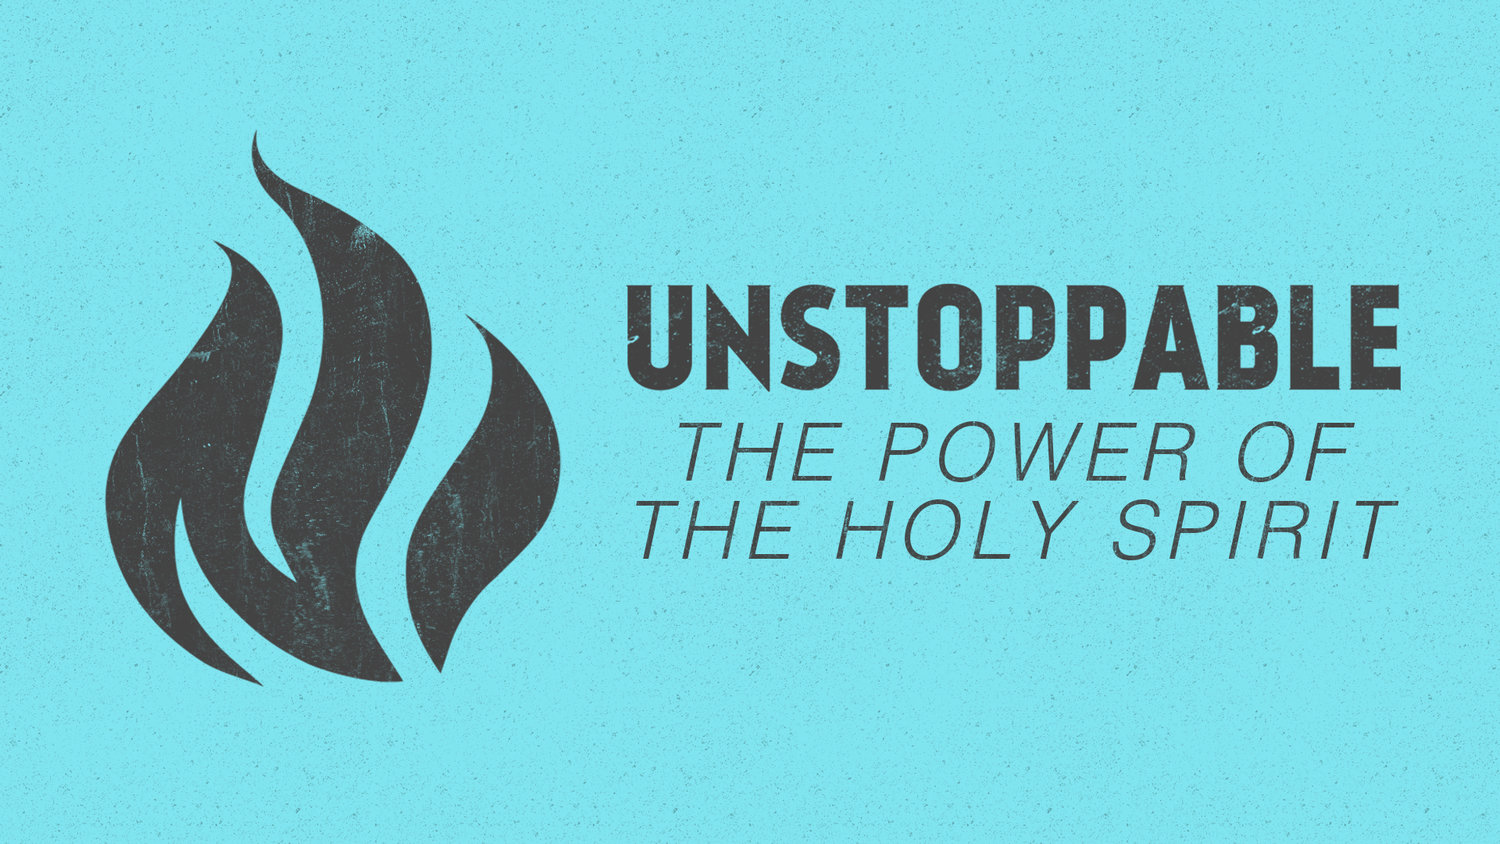 UNSTOPPABLE: THE POWER OF THE HOLY SPIRIT - An Unstoppable